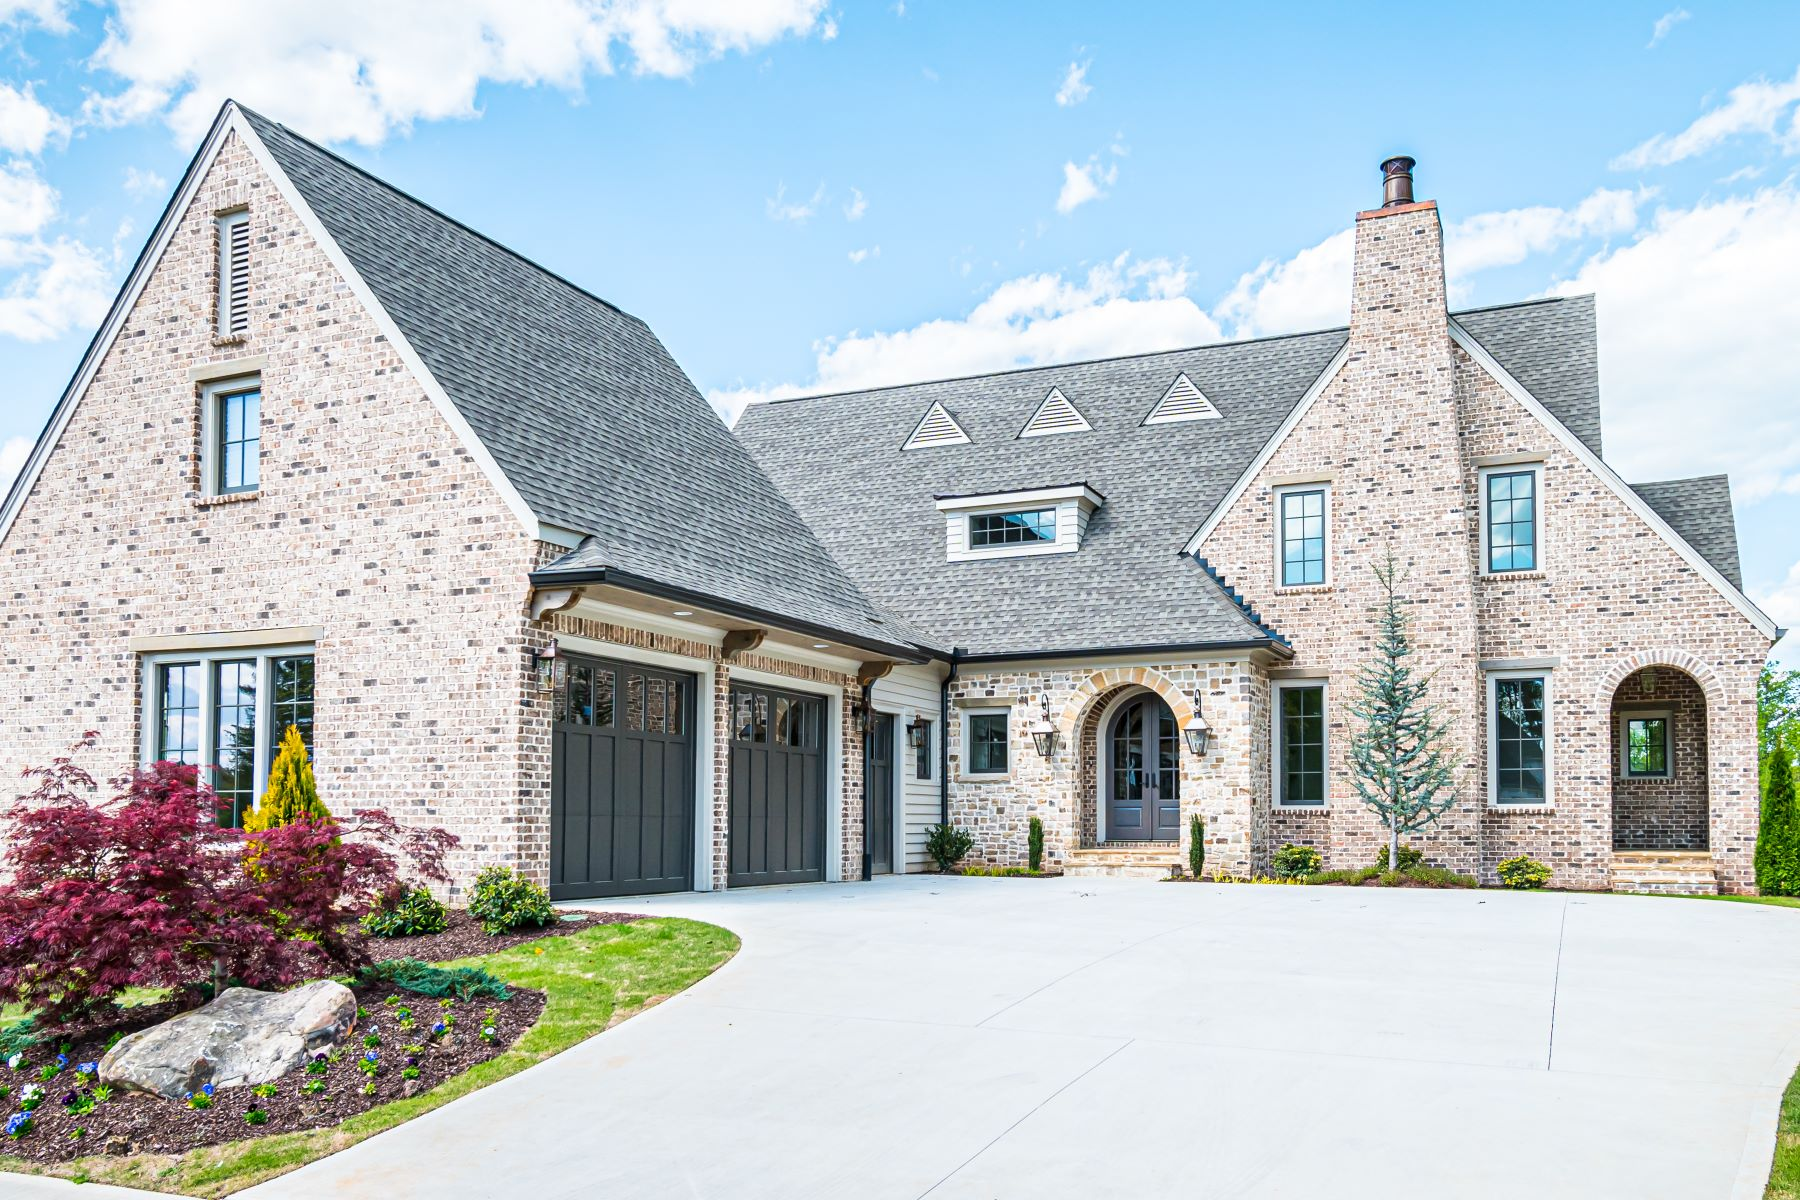 Single Family Homes for Sale at The Manor Cottages 3535 Glenalven Loop Alpharetta, Georgia 30004 United States